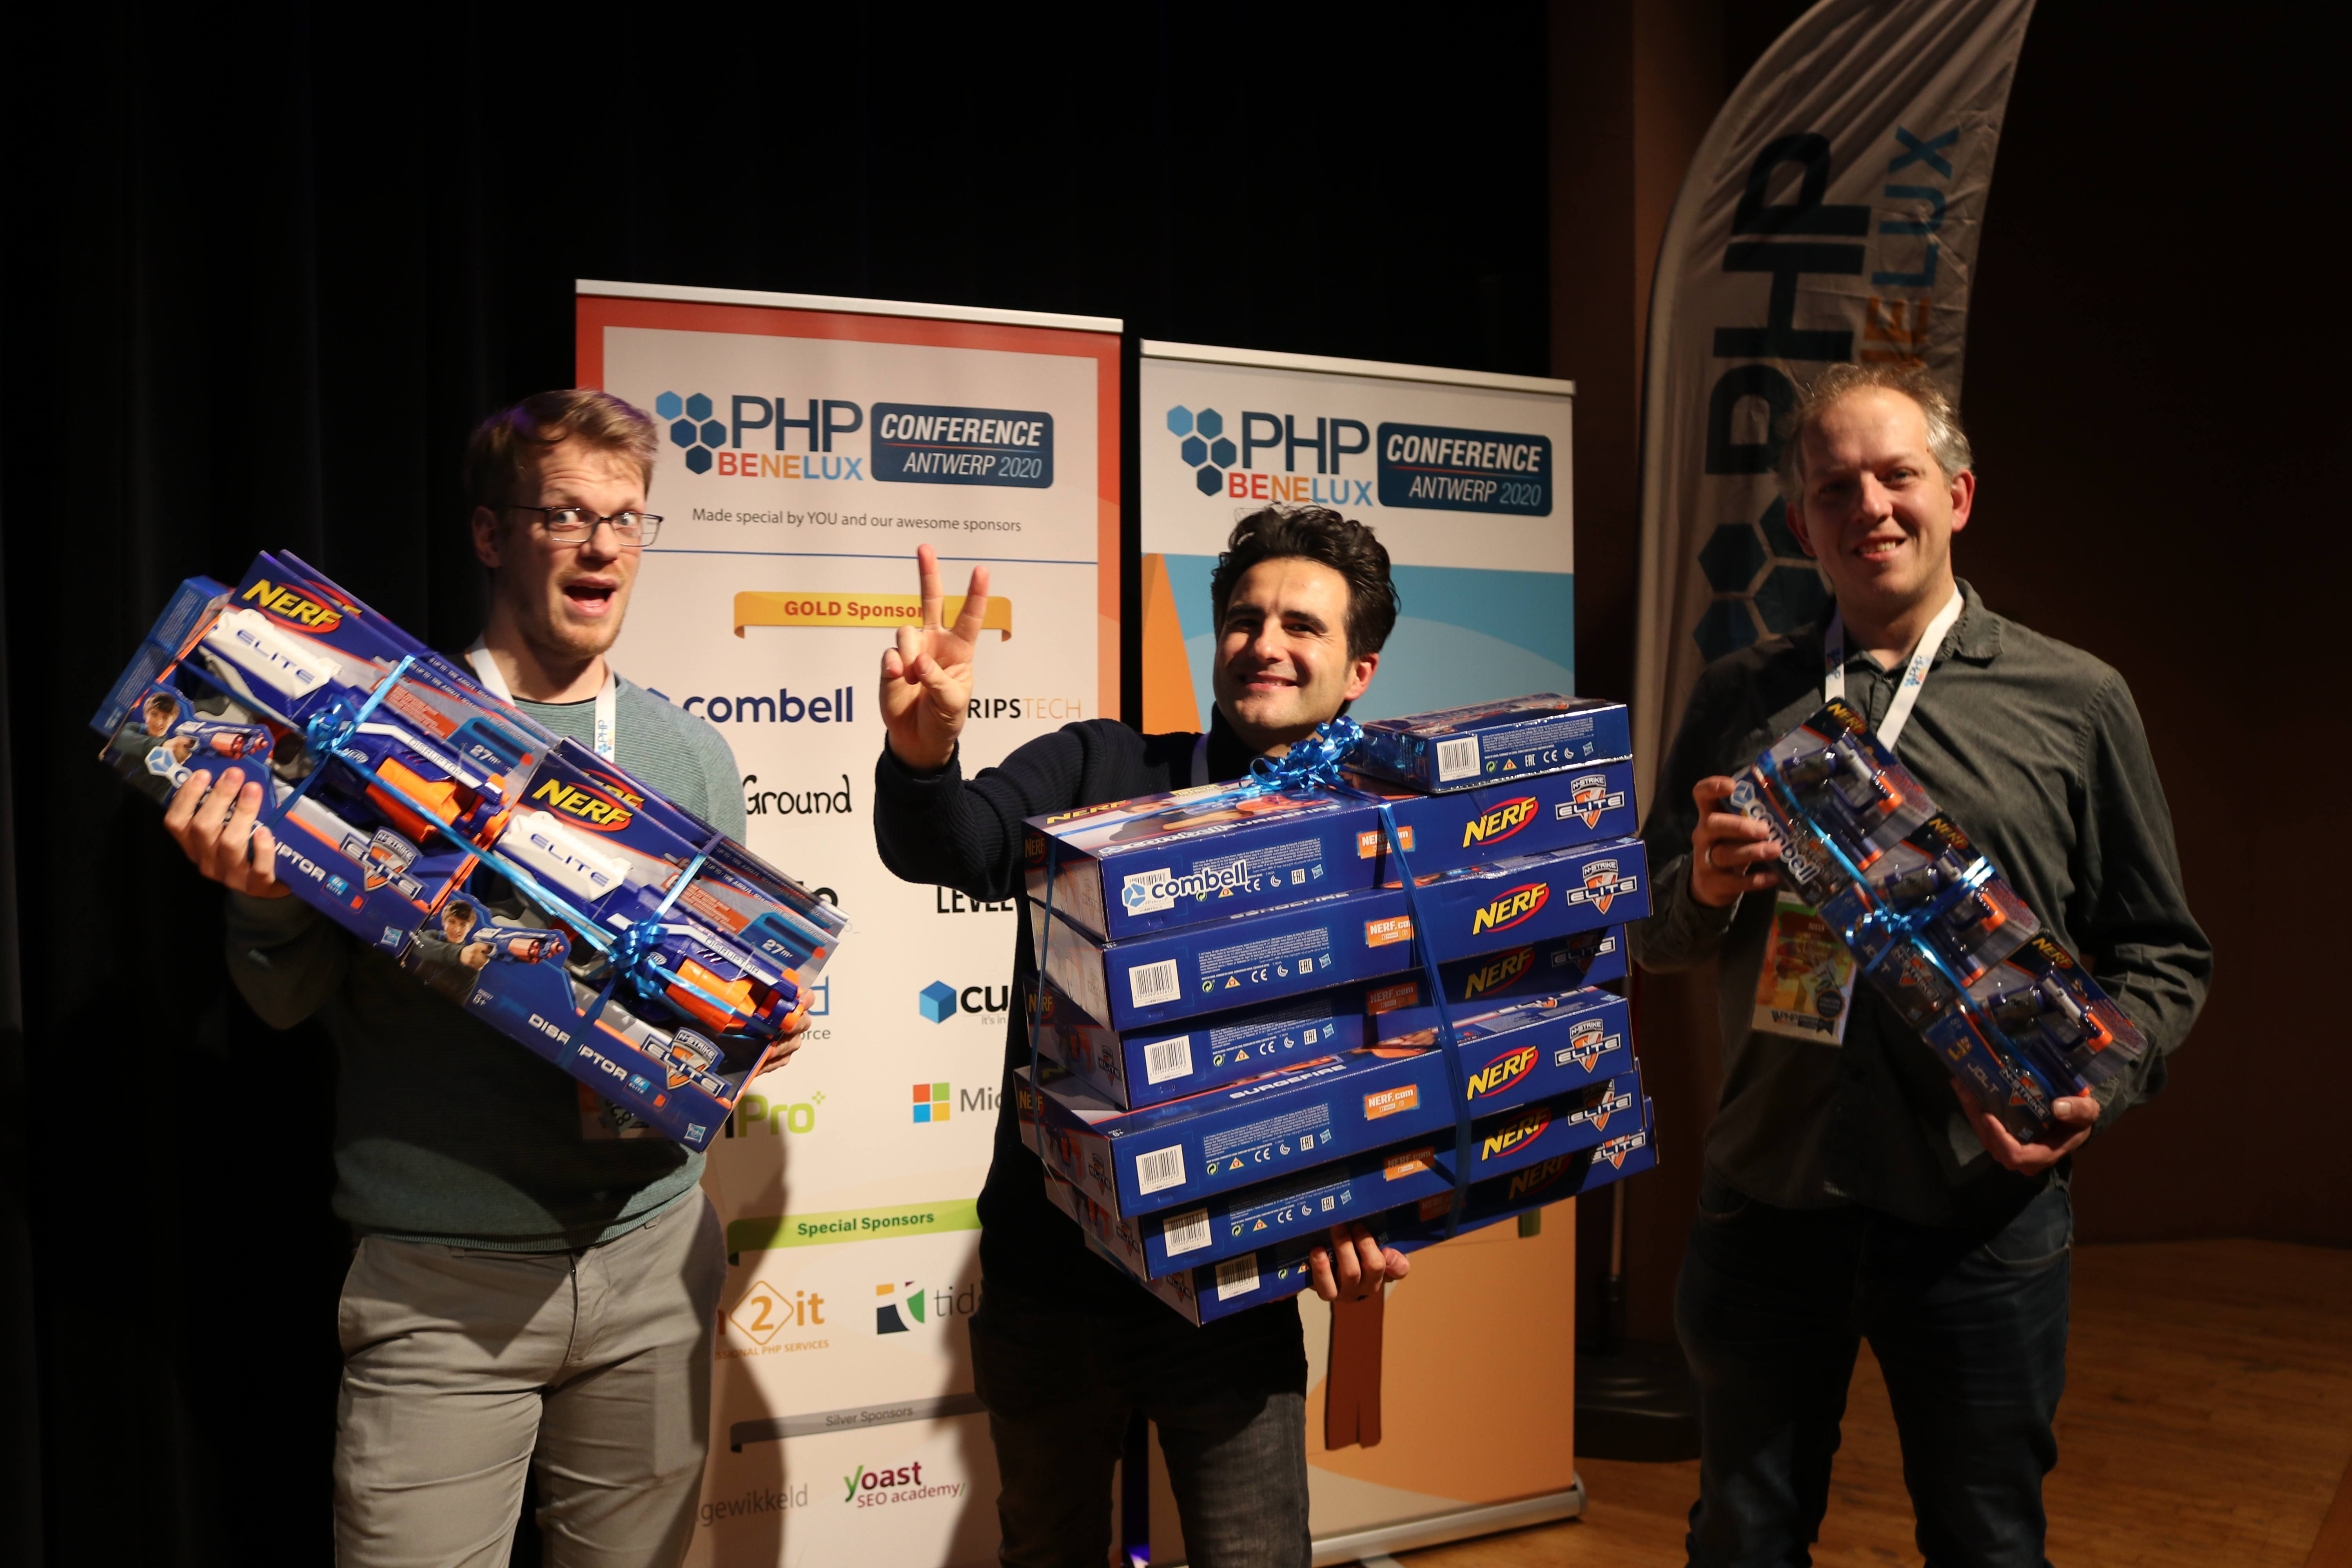 PHPBenelux Conference winners